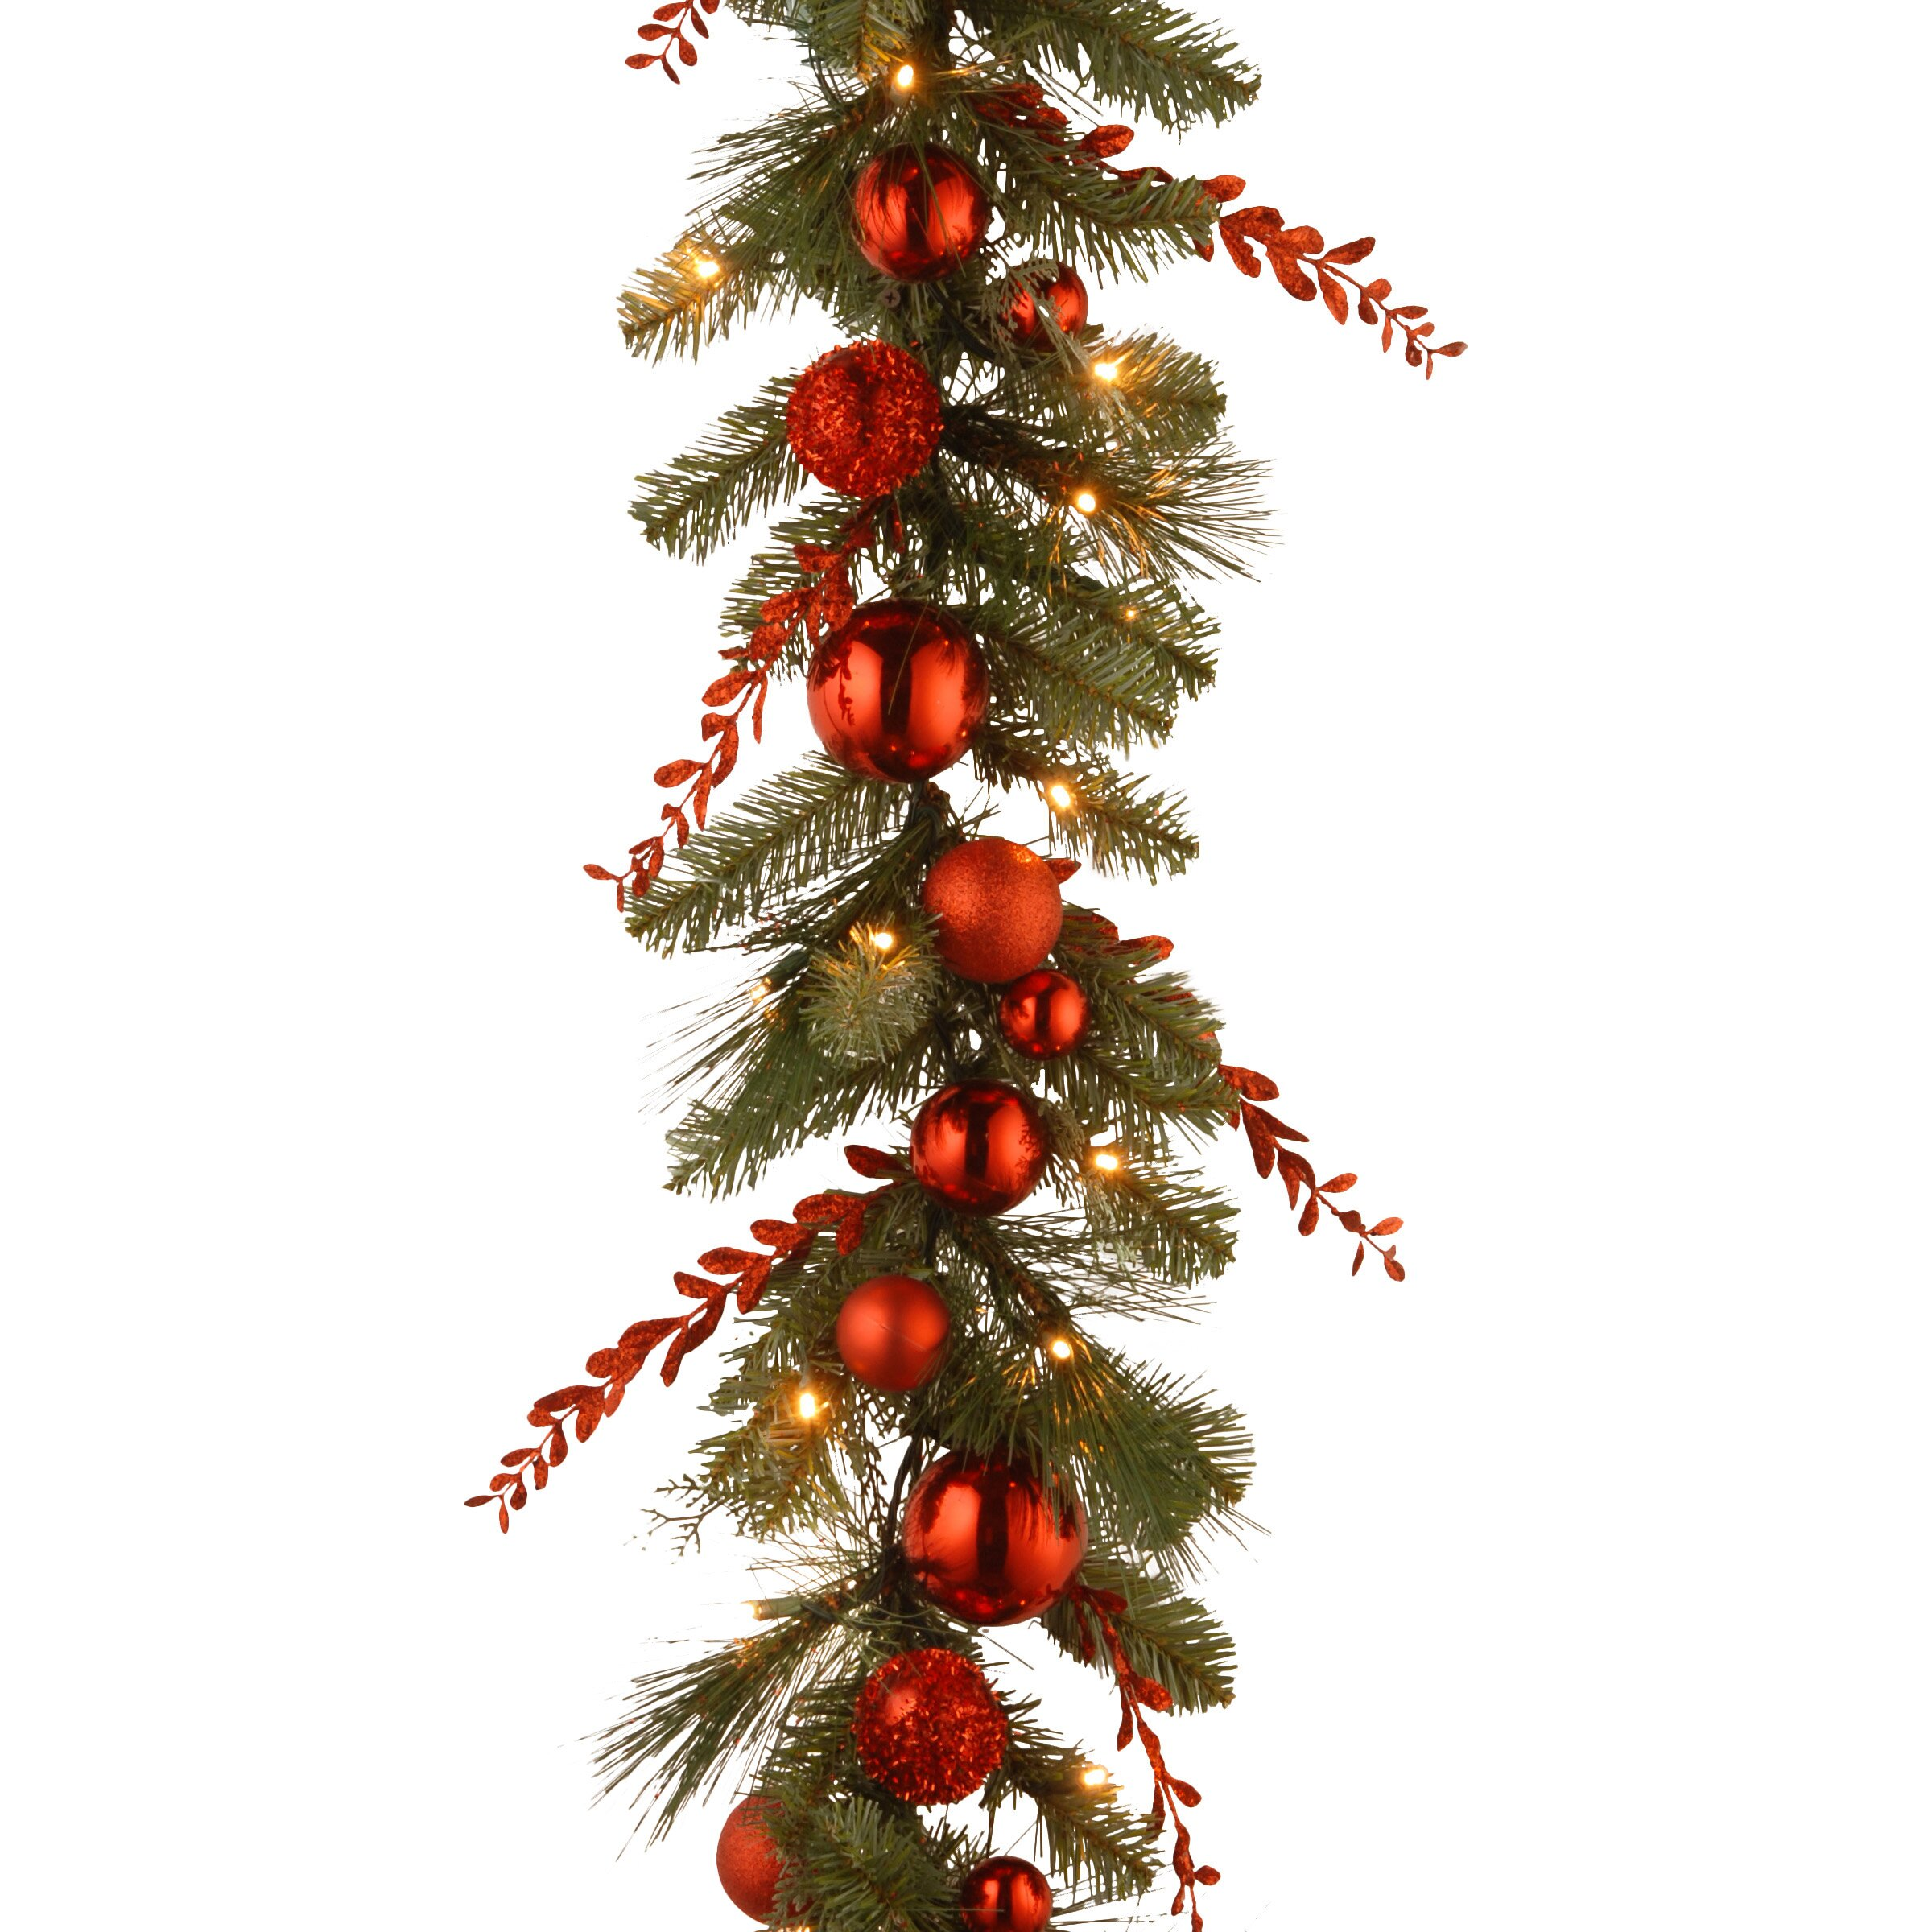 Outdoor Christmas Decorations: National Tree Co. Decorative Pre-Lit Christmas Mixed